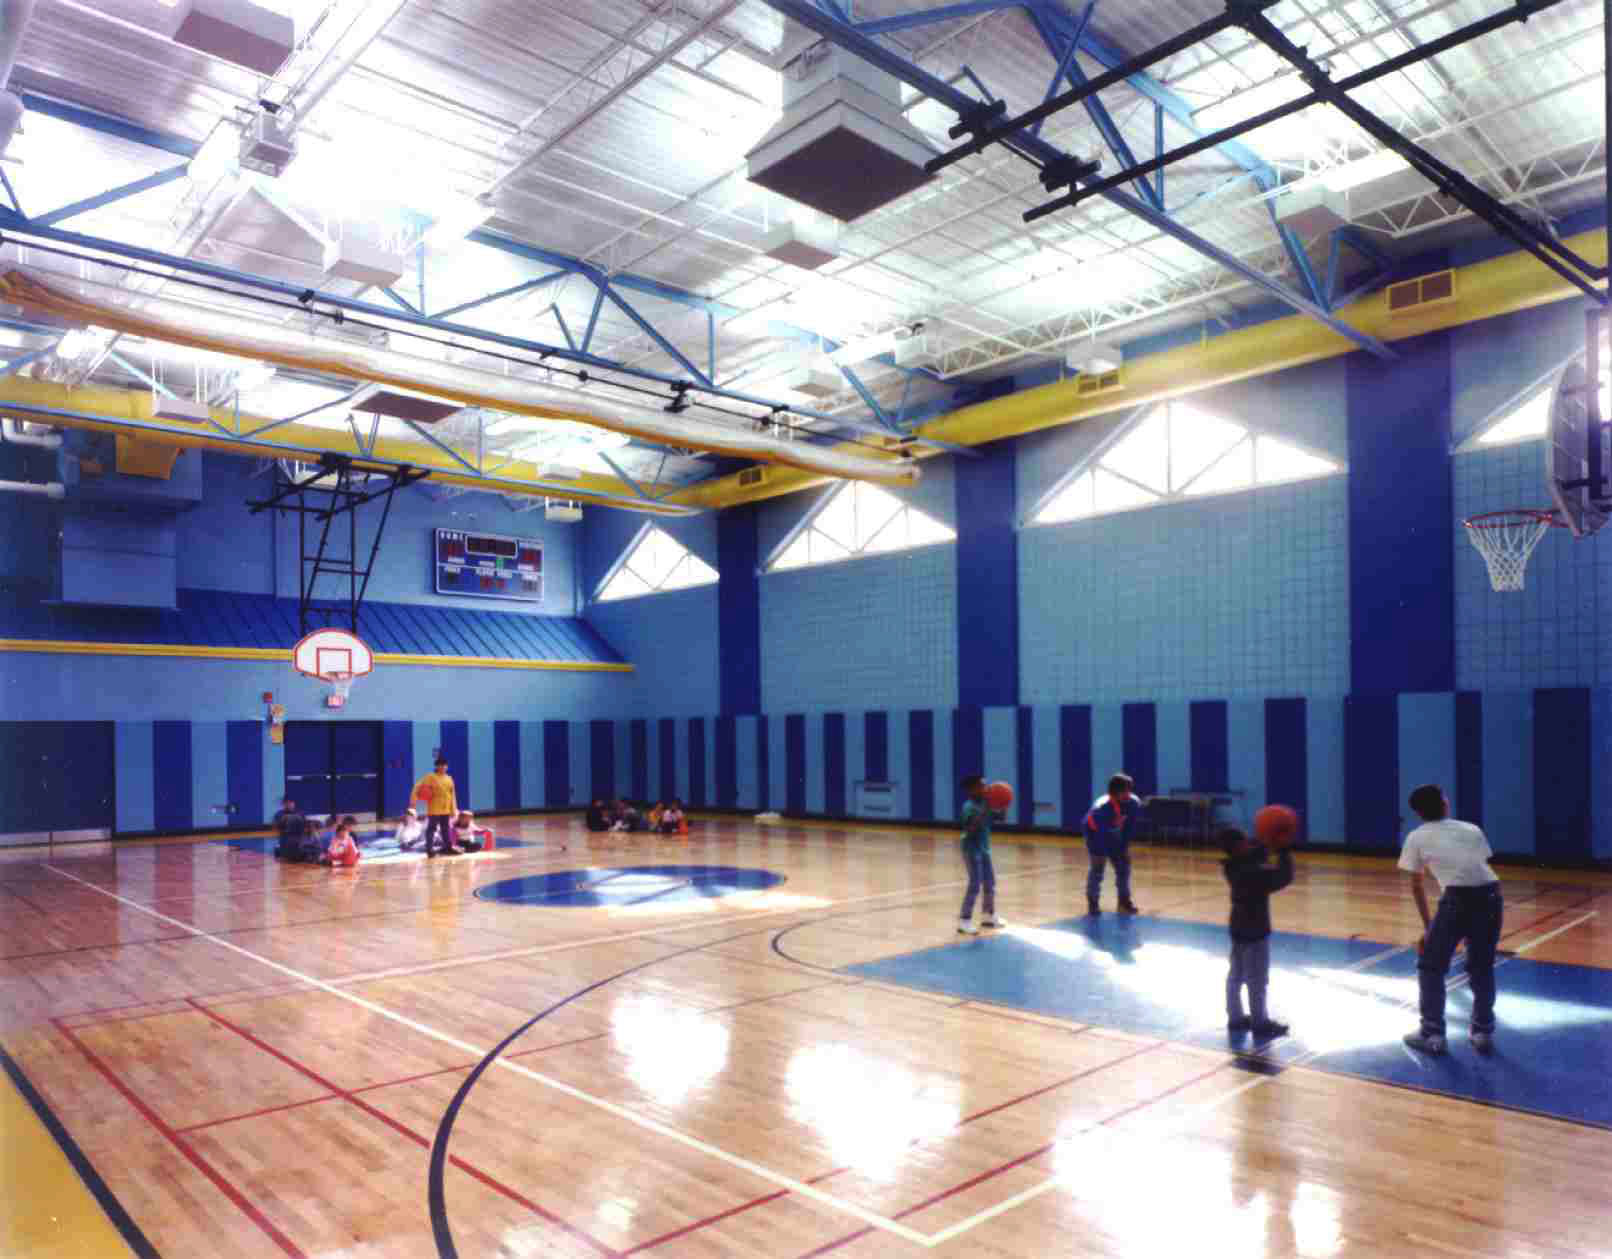 The Gym at the Yonkers Microsociety